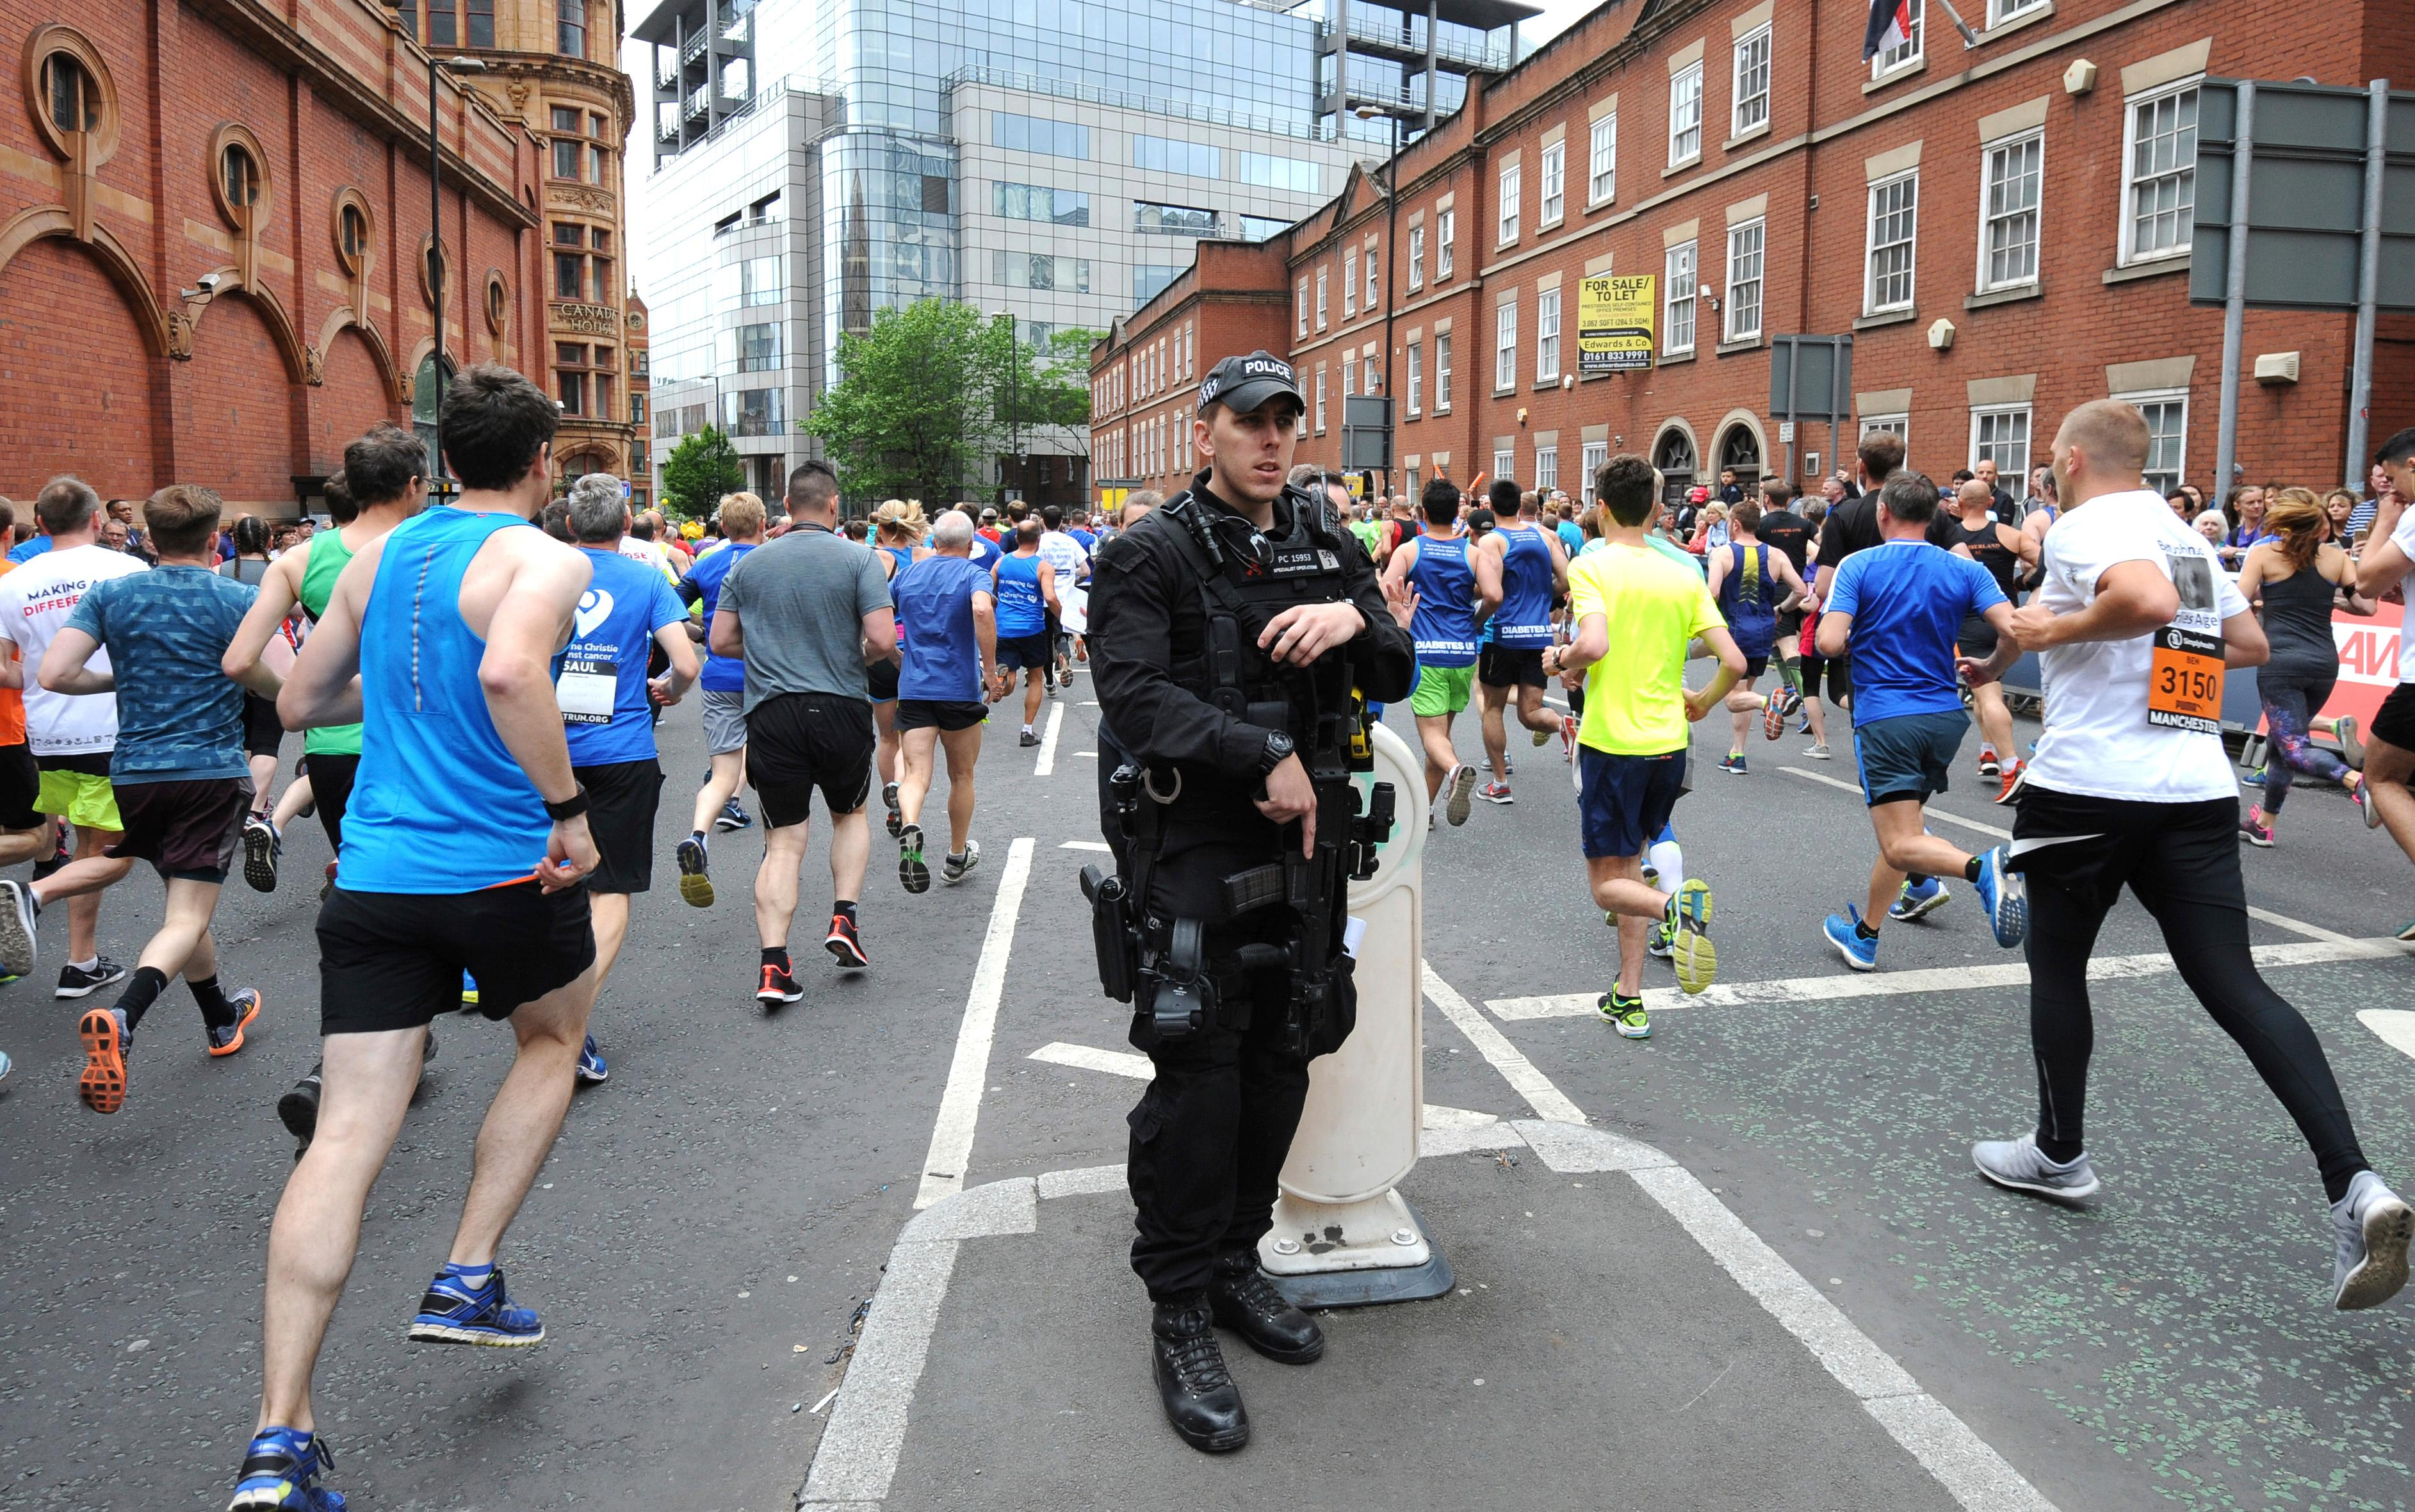 Armed response police stand at the start of the Great Manchester Run in central Manchester, England Sunday May 28 2017. More than 20 people were killed in an explosion following a Ariana Grande concert at the Manchester Arena late Monday evening. (AP Photo/Rui Vieira)